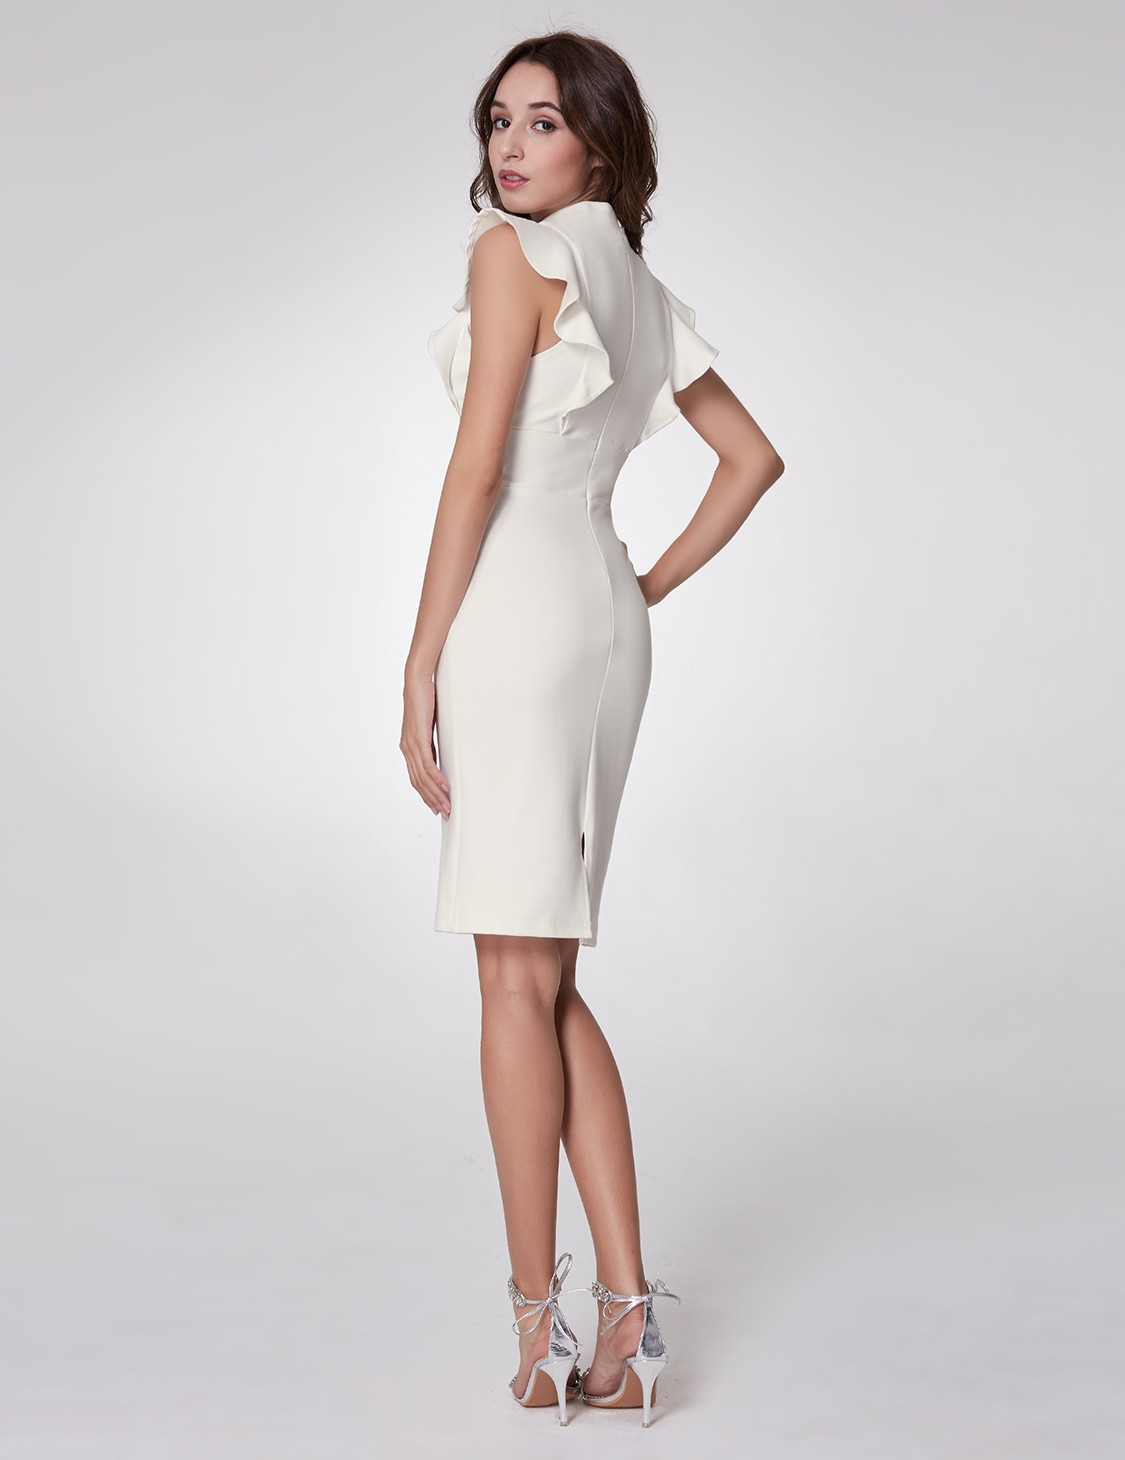 Ever-Pretty-US-White-Short-V-neck-Evening-Dresses-Ruffles-Cocktail-Gowns-05967